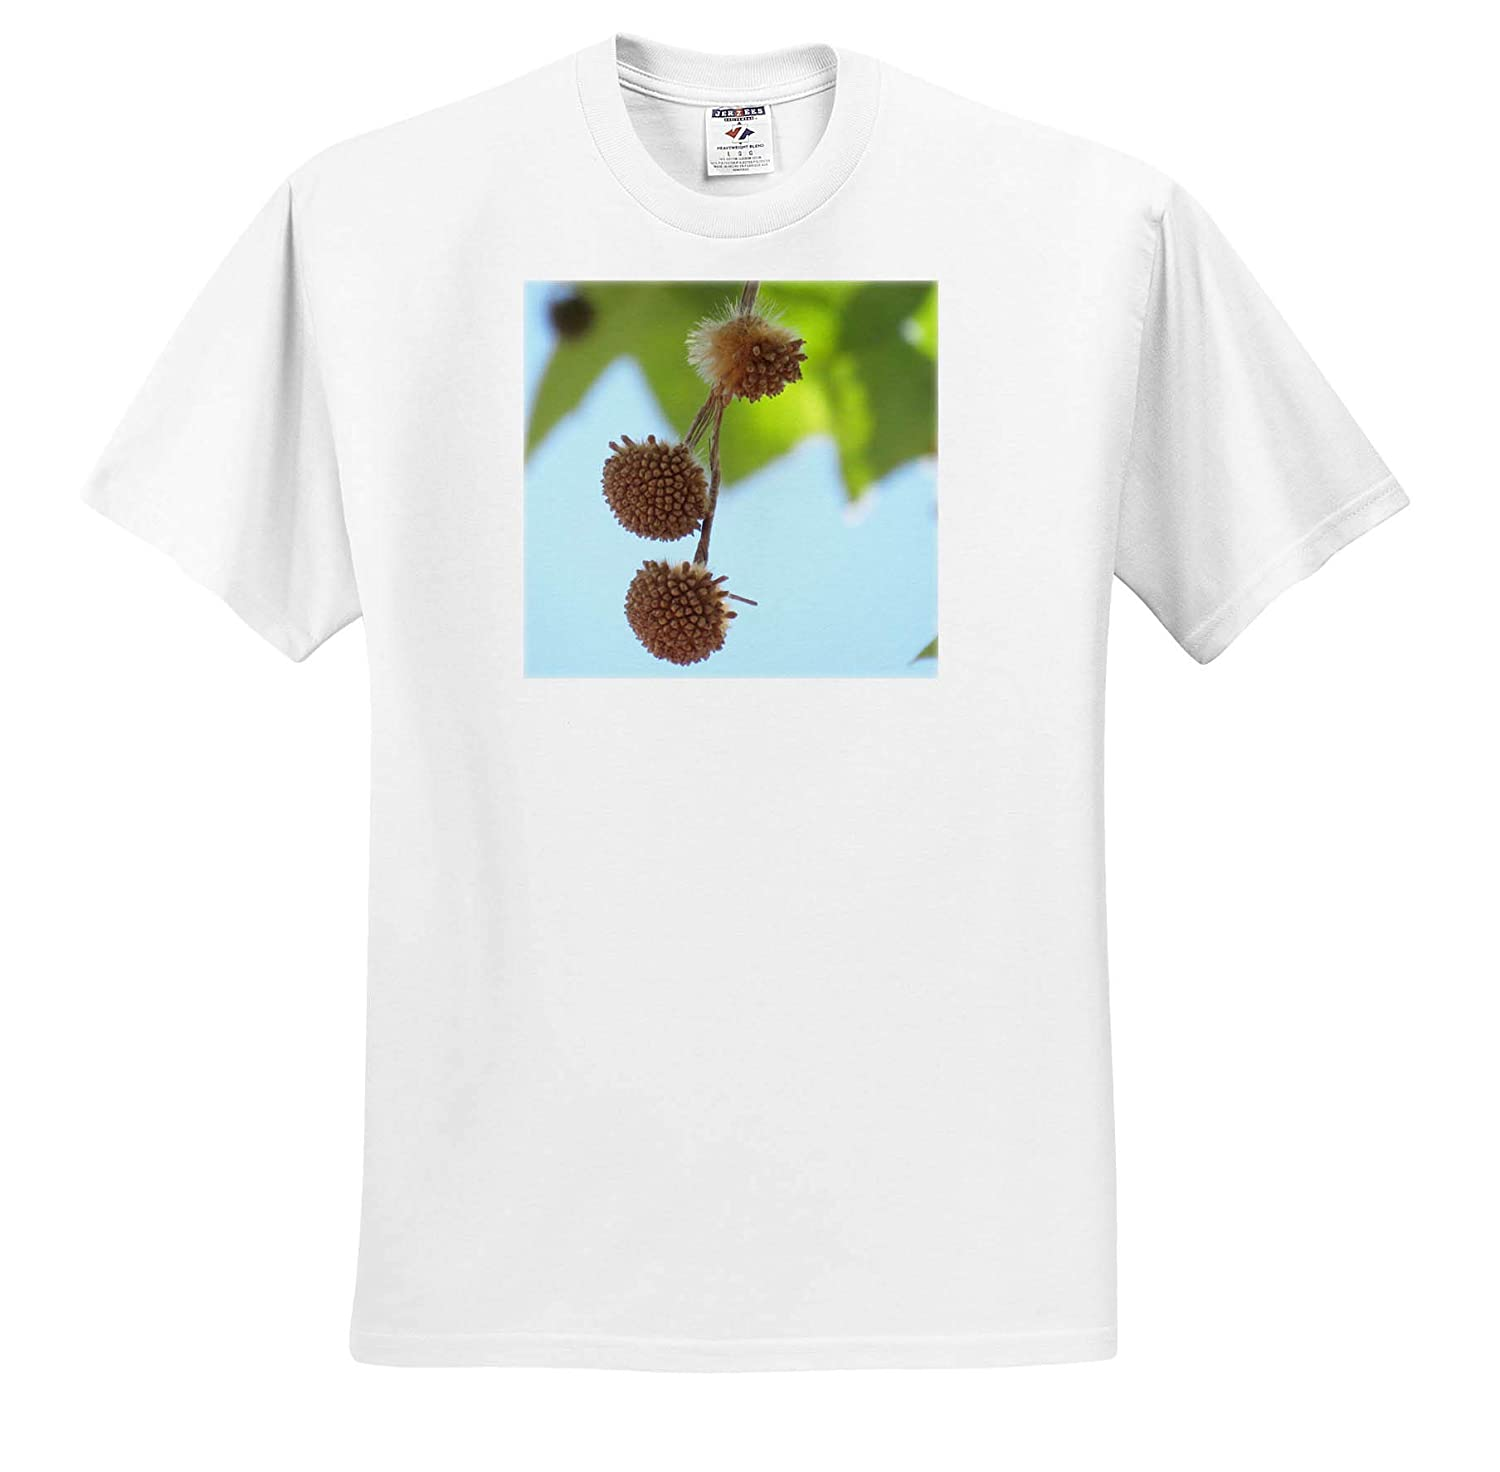 Buds Hanging on a Tree with Green Leaves in Back Toddler T-Shirt ts/_291077/_17 Jos Fauxtographee- Buds Hanging on Tree T-Shirts 4T